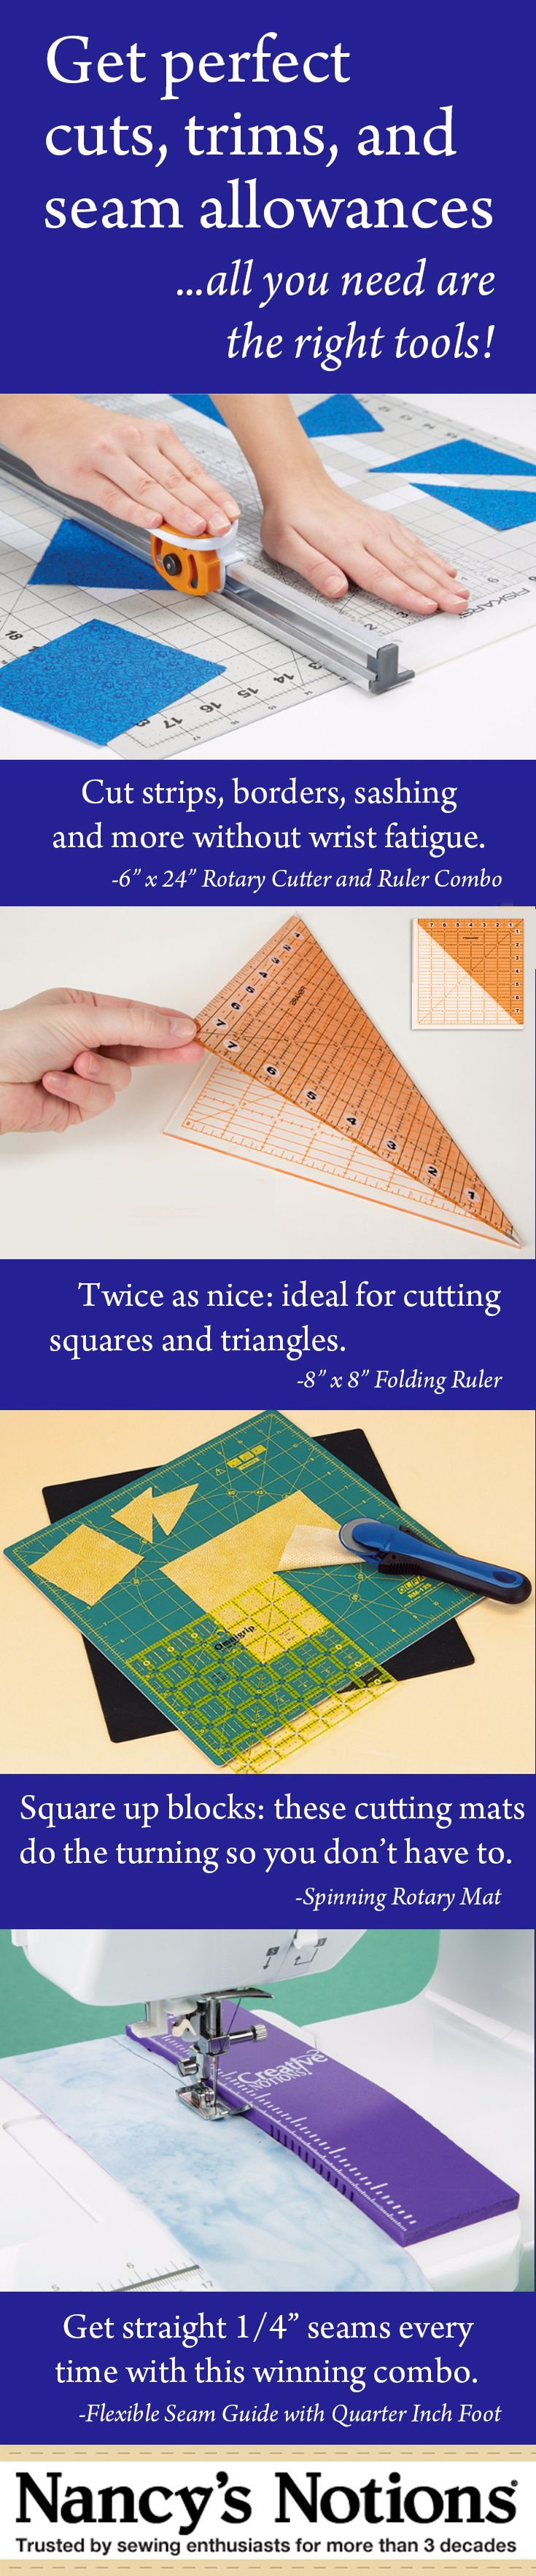 Get perfect cuts, trims, and seam allowances with the right tools - Rotary Cutter and Ruler Combo - Fiskars Folding Ruler - Spinning Rotary Mat - Flexible Seam Guide with Quarter Inch Foot - Nancy's Notions - Sewing and quilting